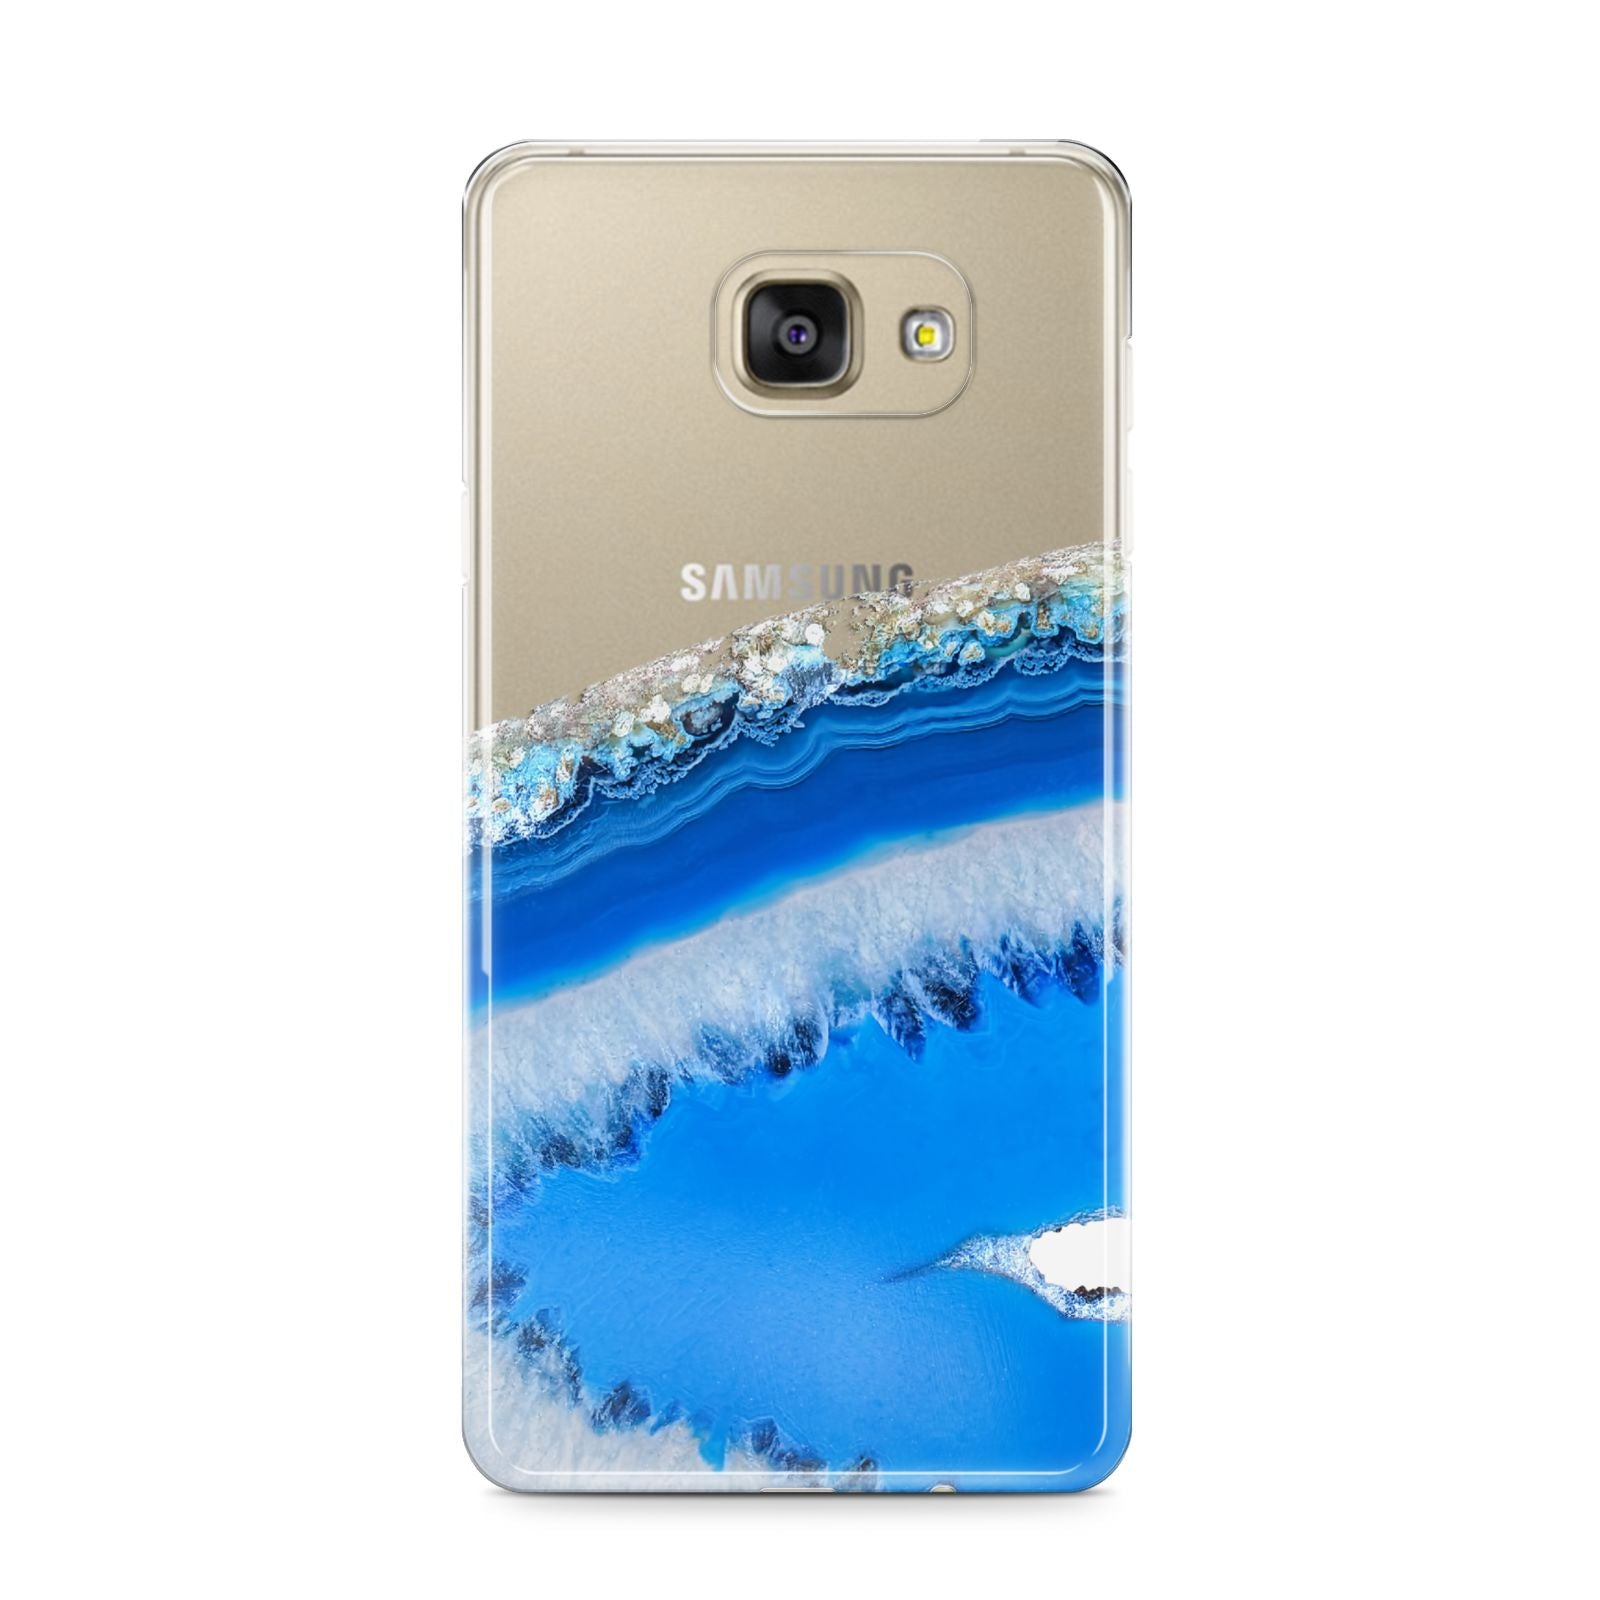 Agate Blue Samsung Galaxy A9 2016 Case on gold phone